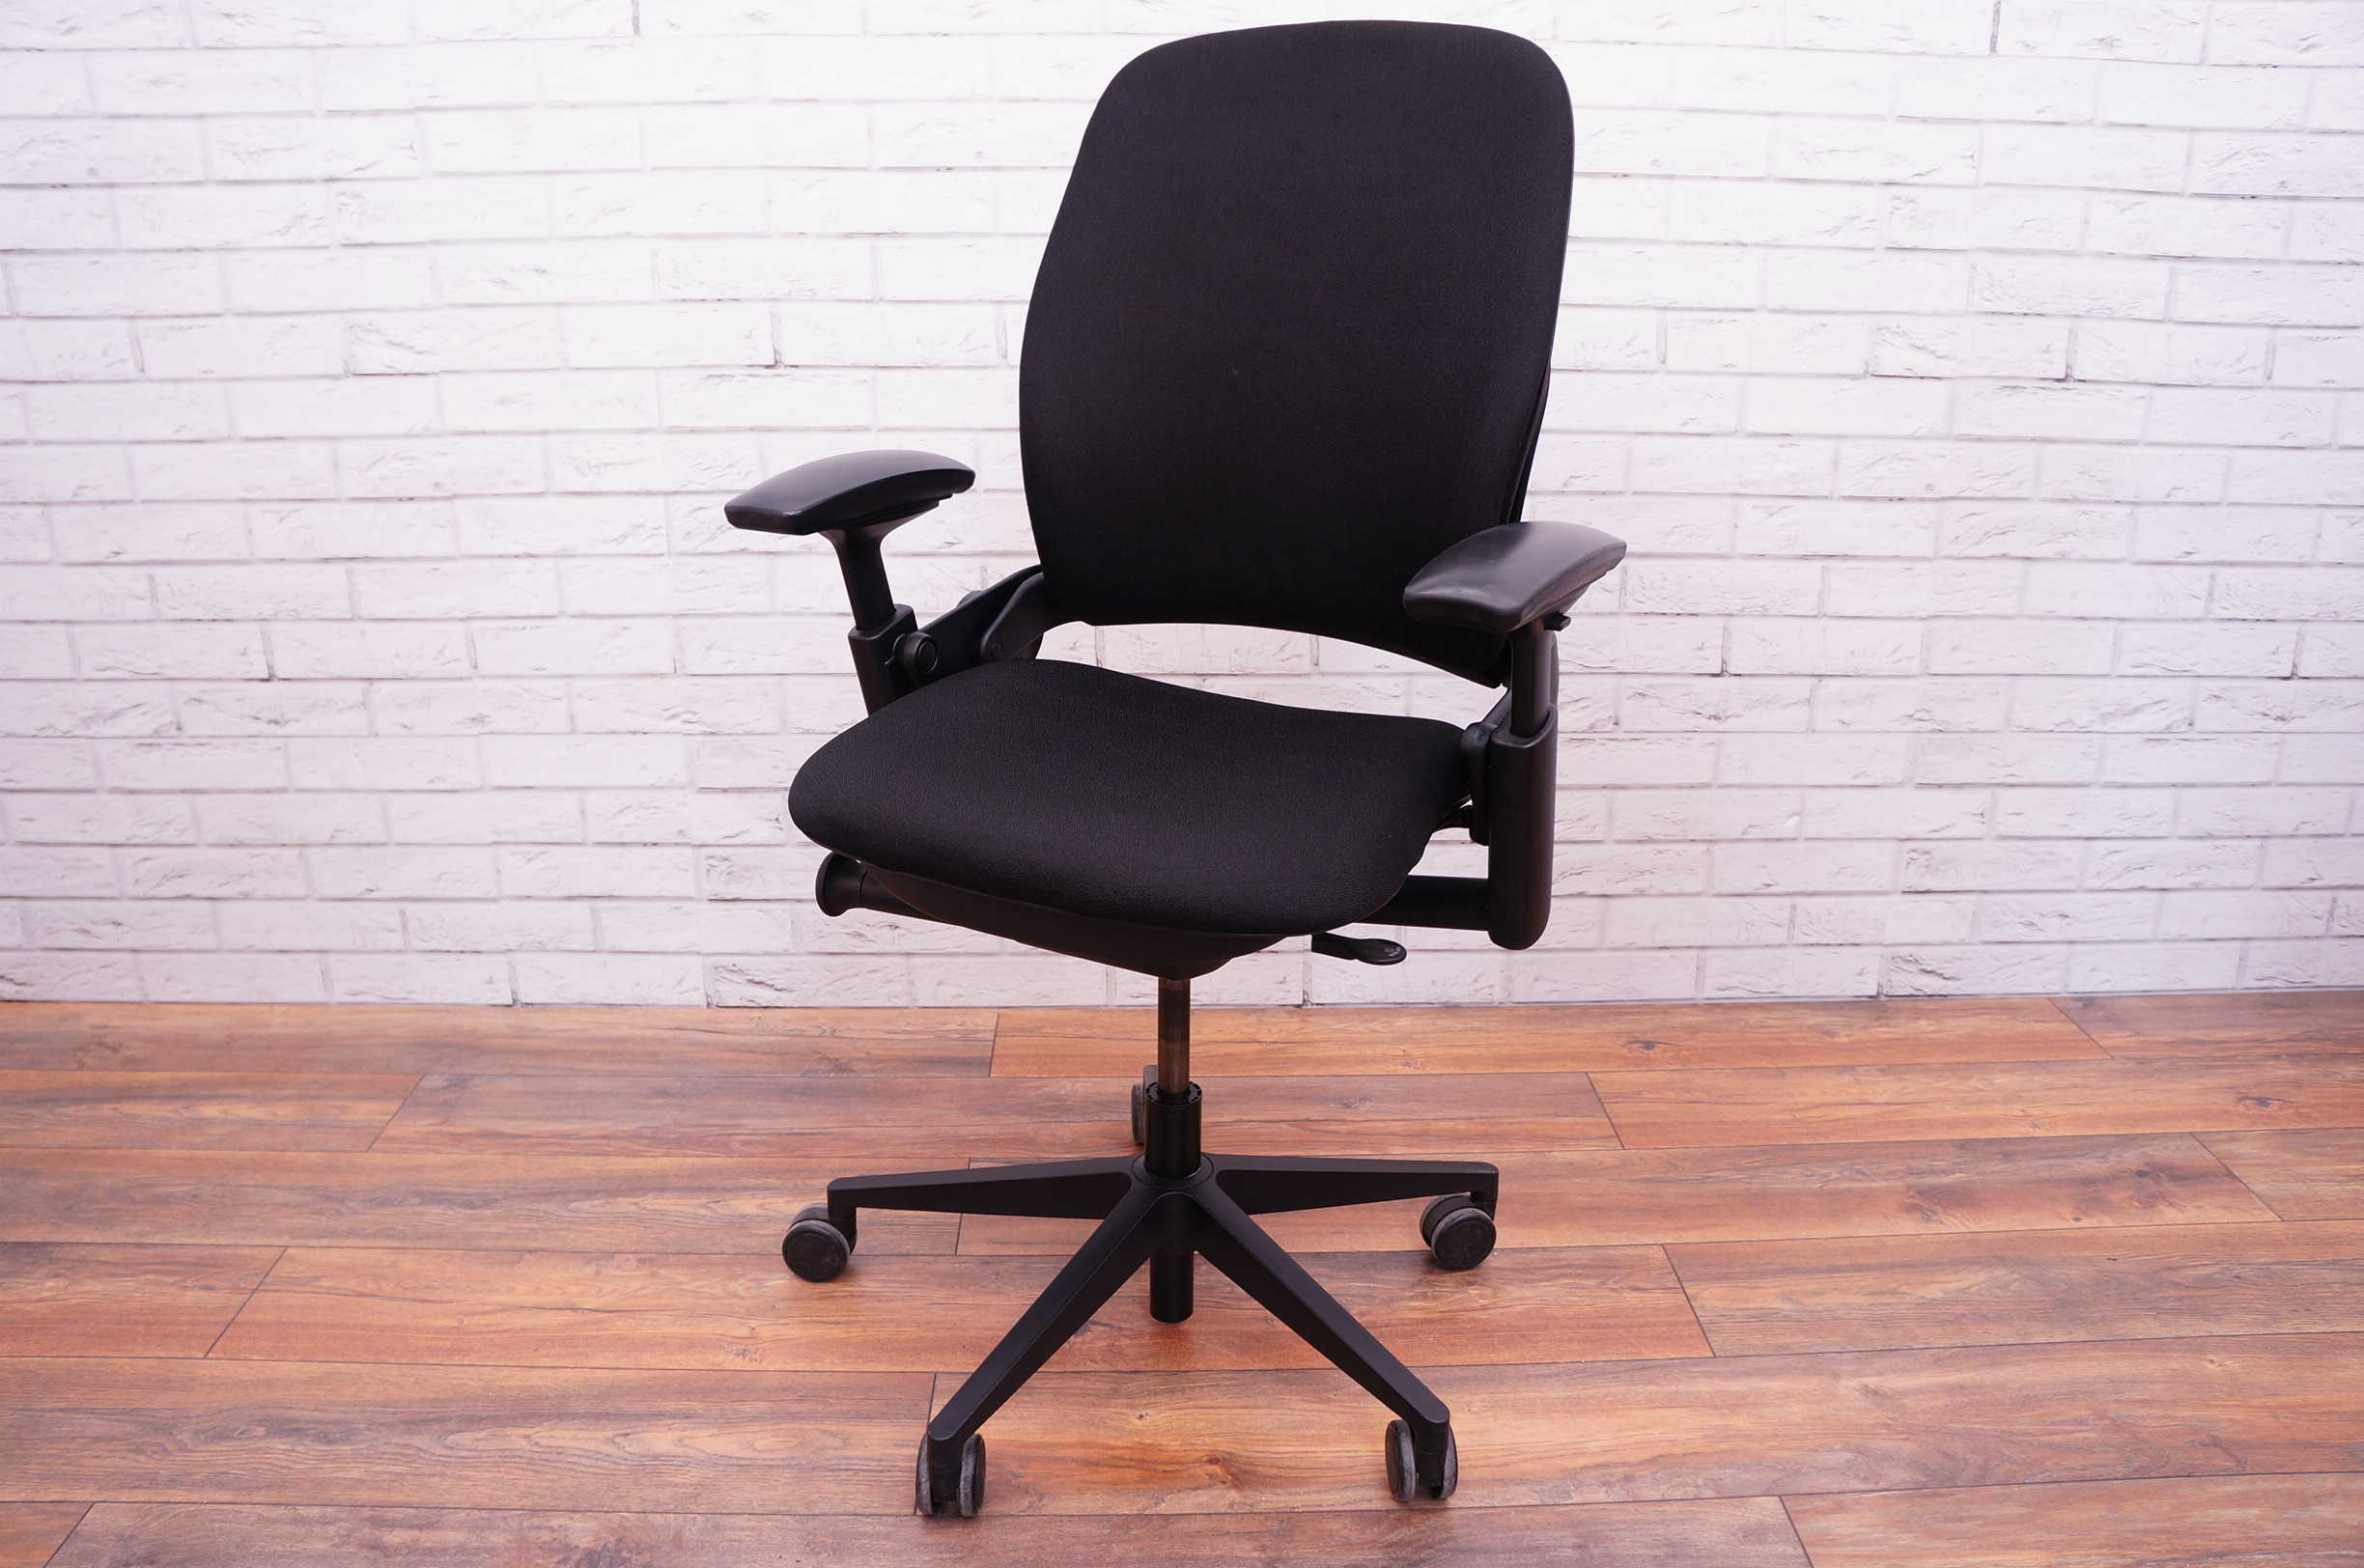 steelcase leap chair v2 review yoga video uk bruin blog